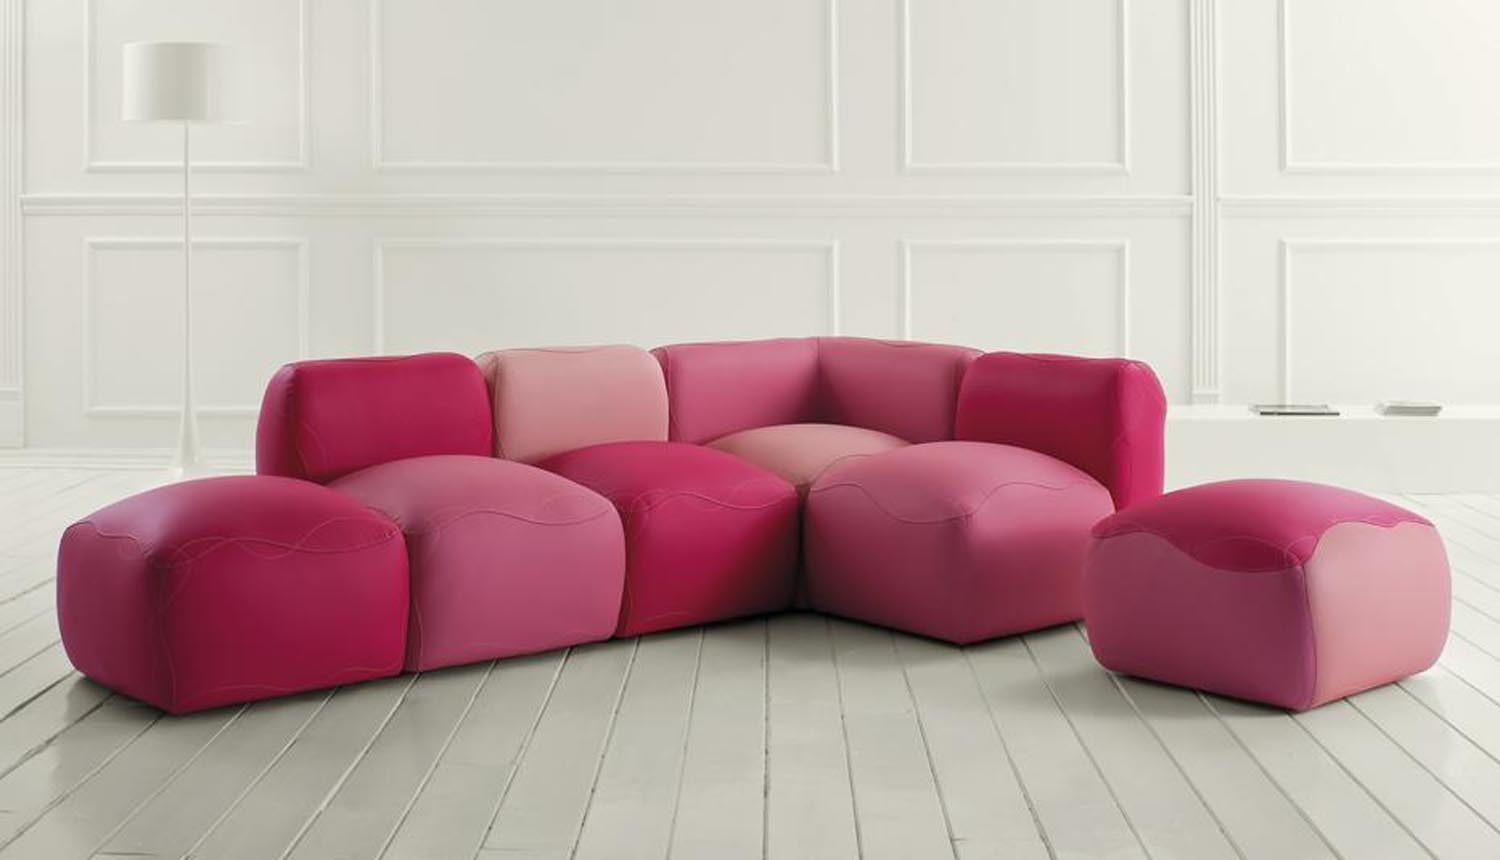 Fun And Unique Sofa Designs: sofa design ideas photos